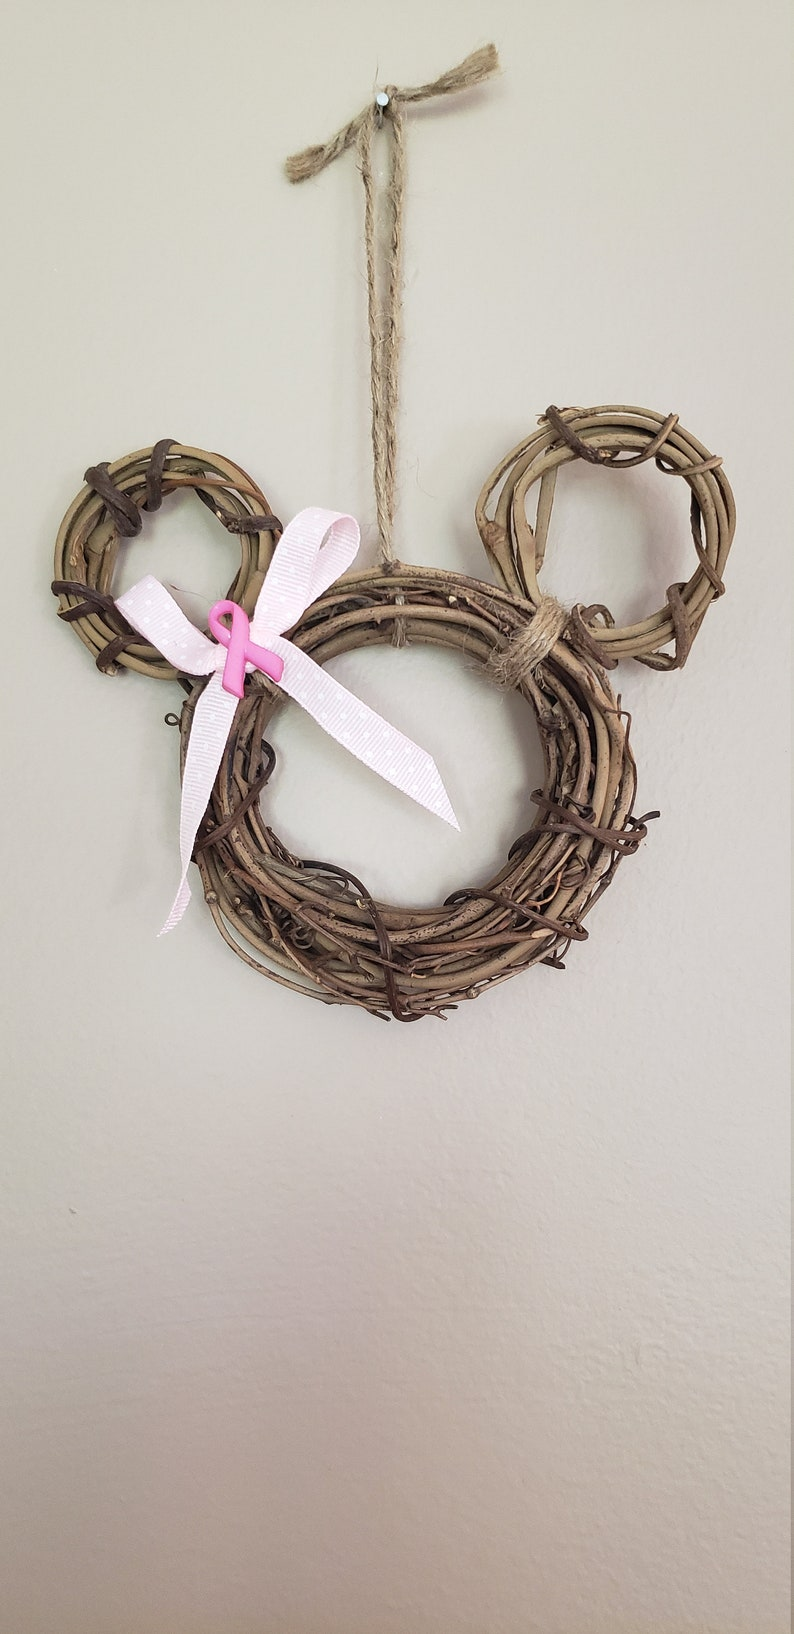 Breast Cancer AwarenessPink RibbonMinnie Mouse Wreath OrnamentCustomize Your Own